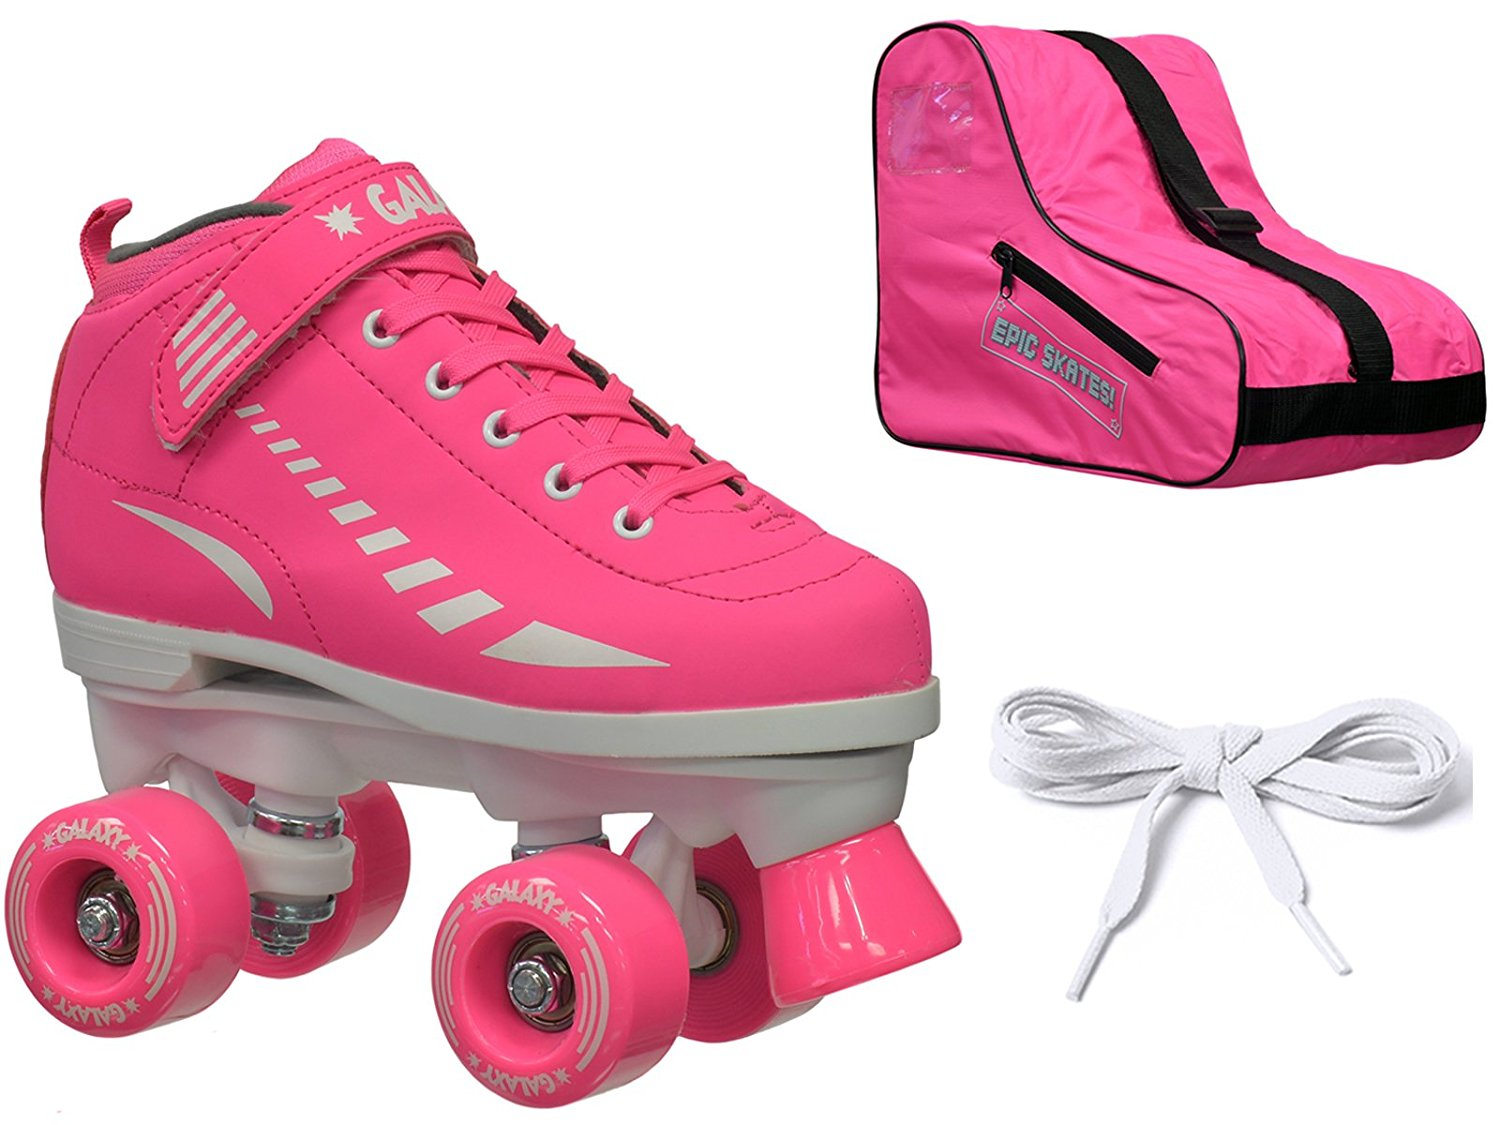 New Epic Galaxy Elite Pink Quad Roller Skate 3 Pc. Bundle w/ Bag & Extra Laces (Pink & Black)!